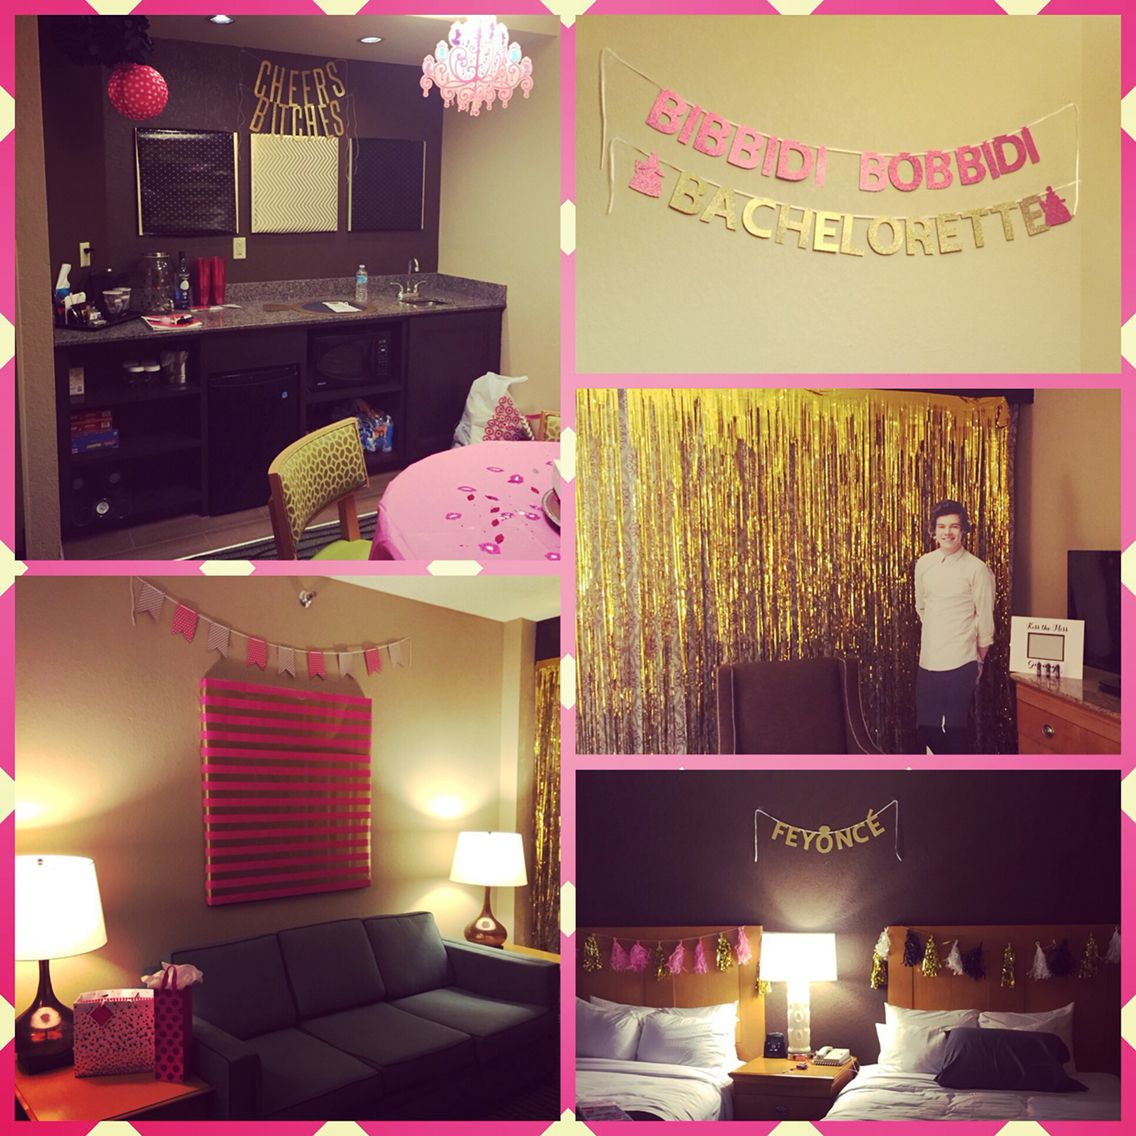 Hotel room decorated for a bachelorette party for Bachelorette party decoration ideas